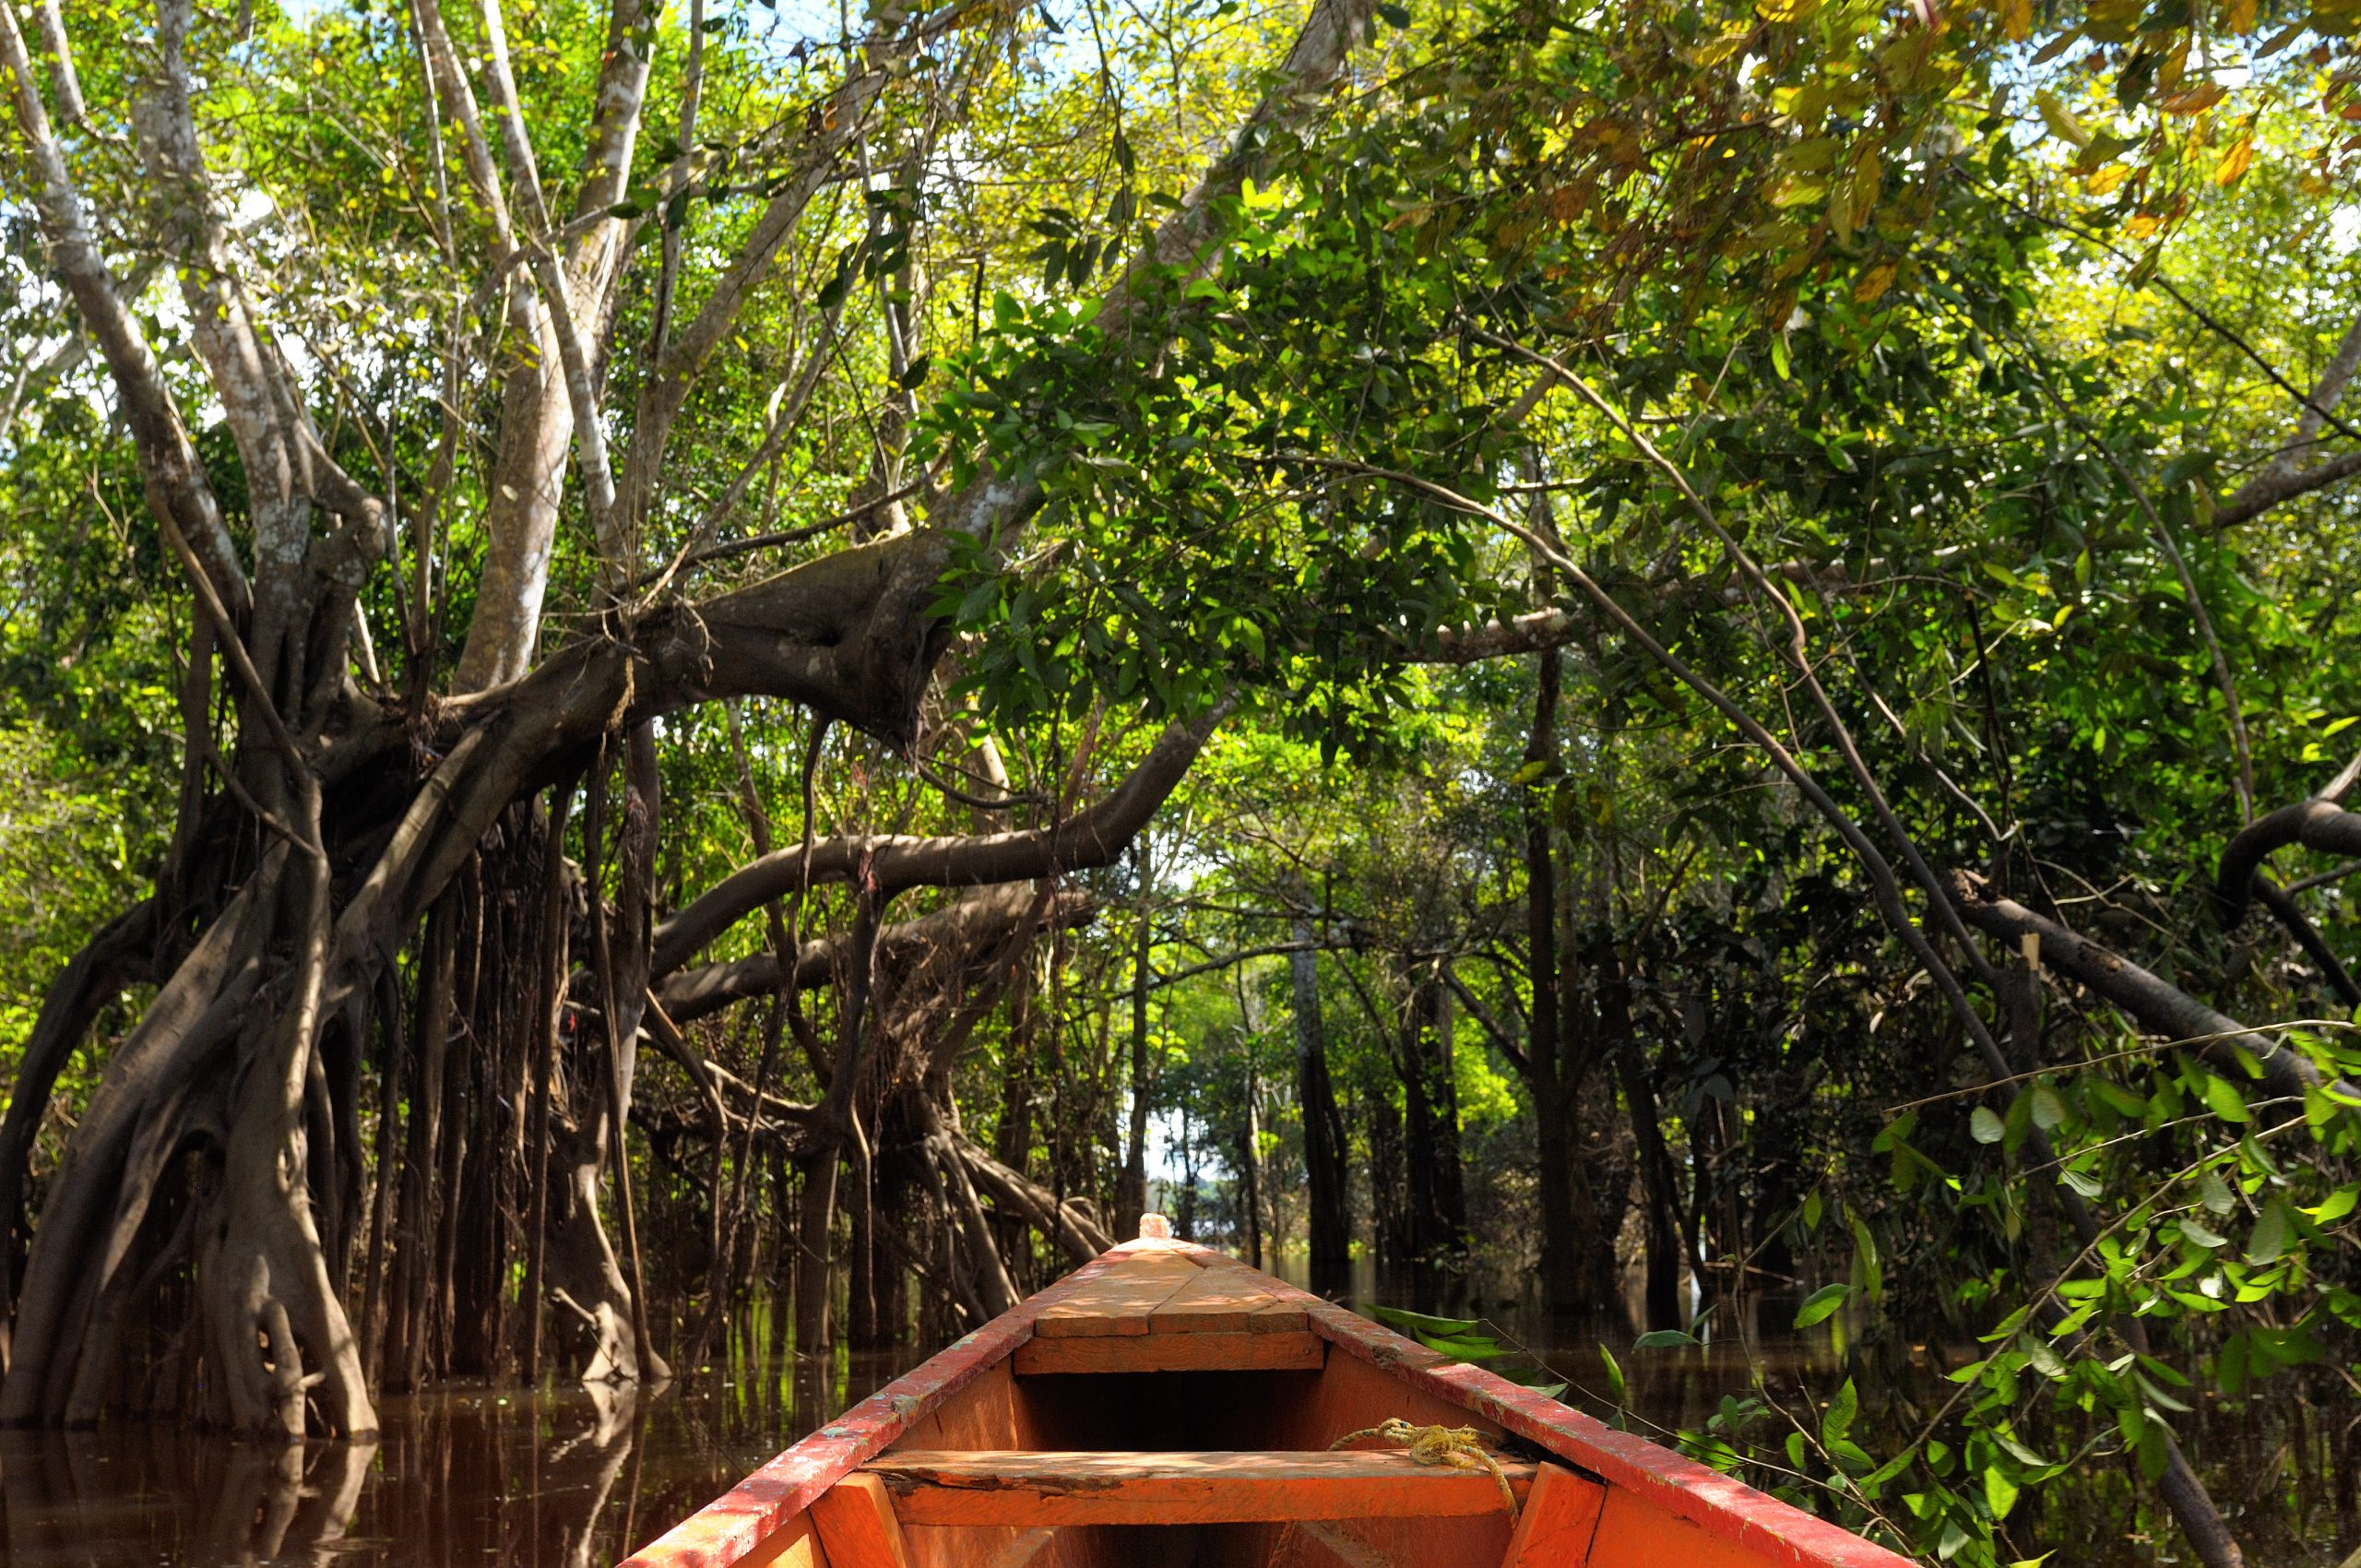 Querida Amazonia: An Opportunity